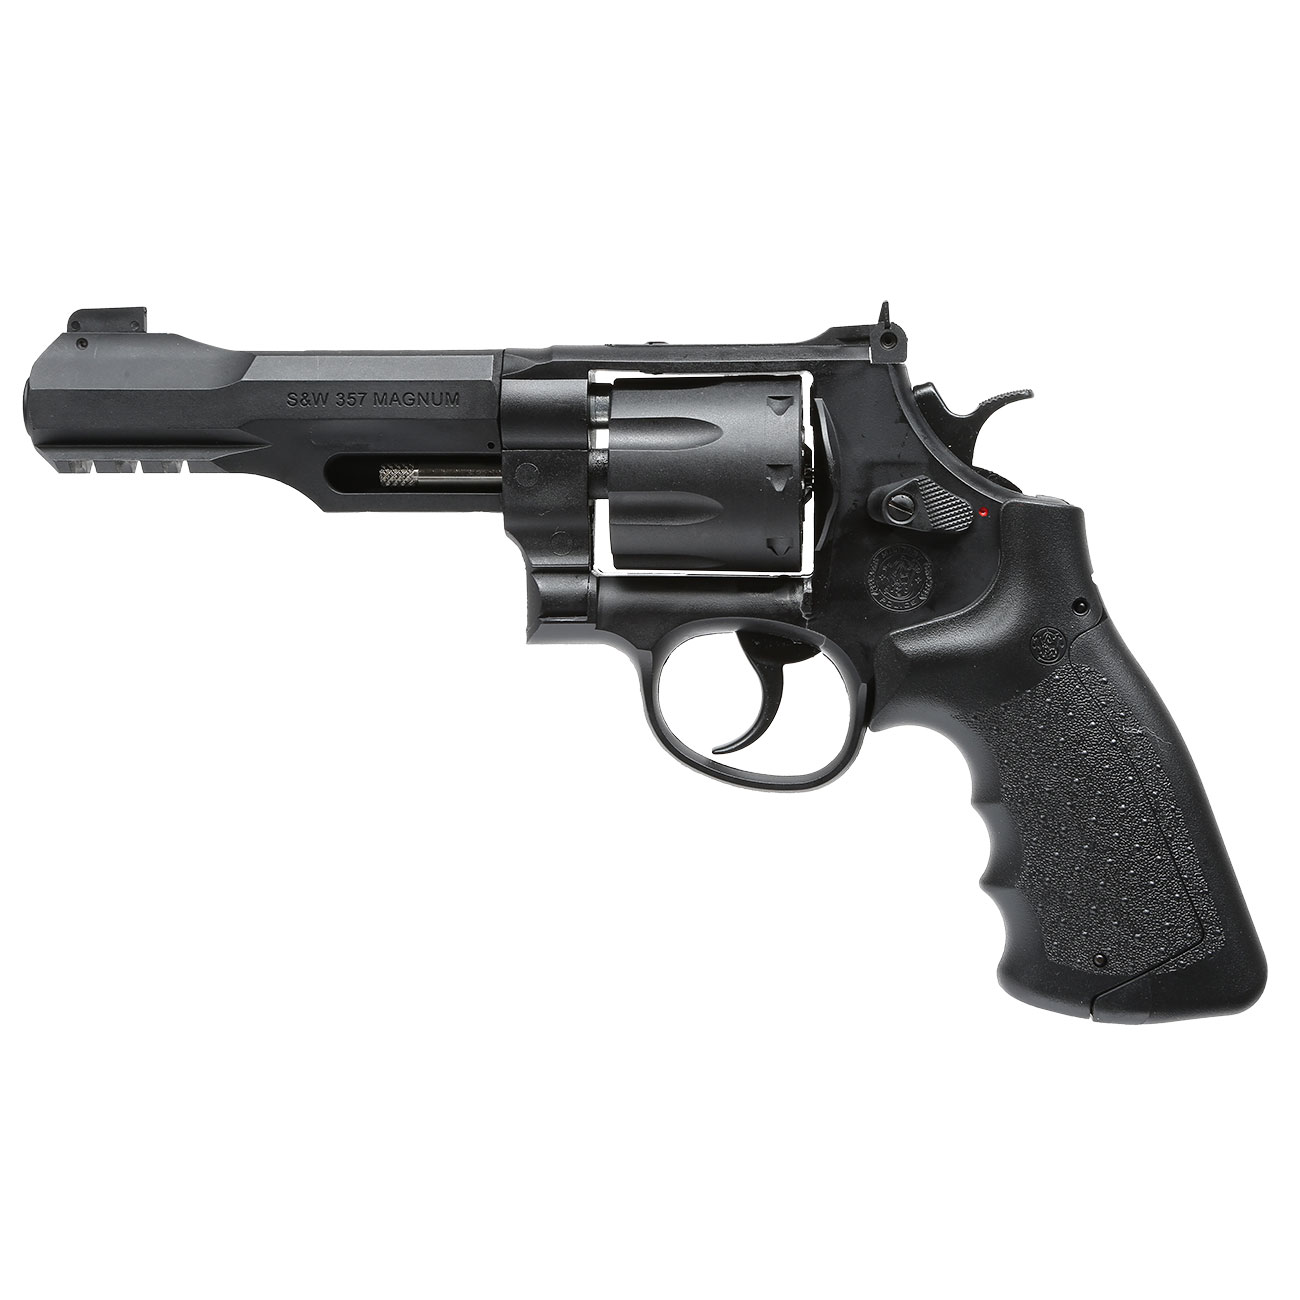 Smith & Wesson M&P R8 4 Zoll CO2 Revolver 6mm BB schwarz 1